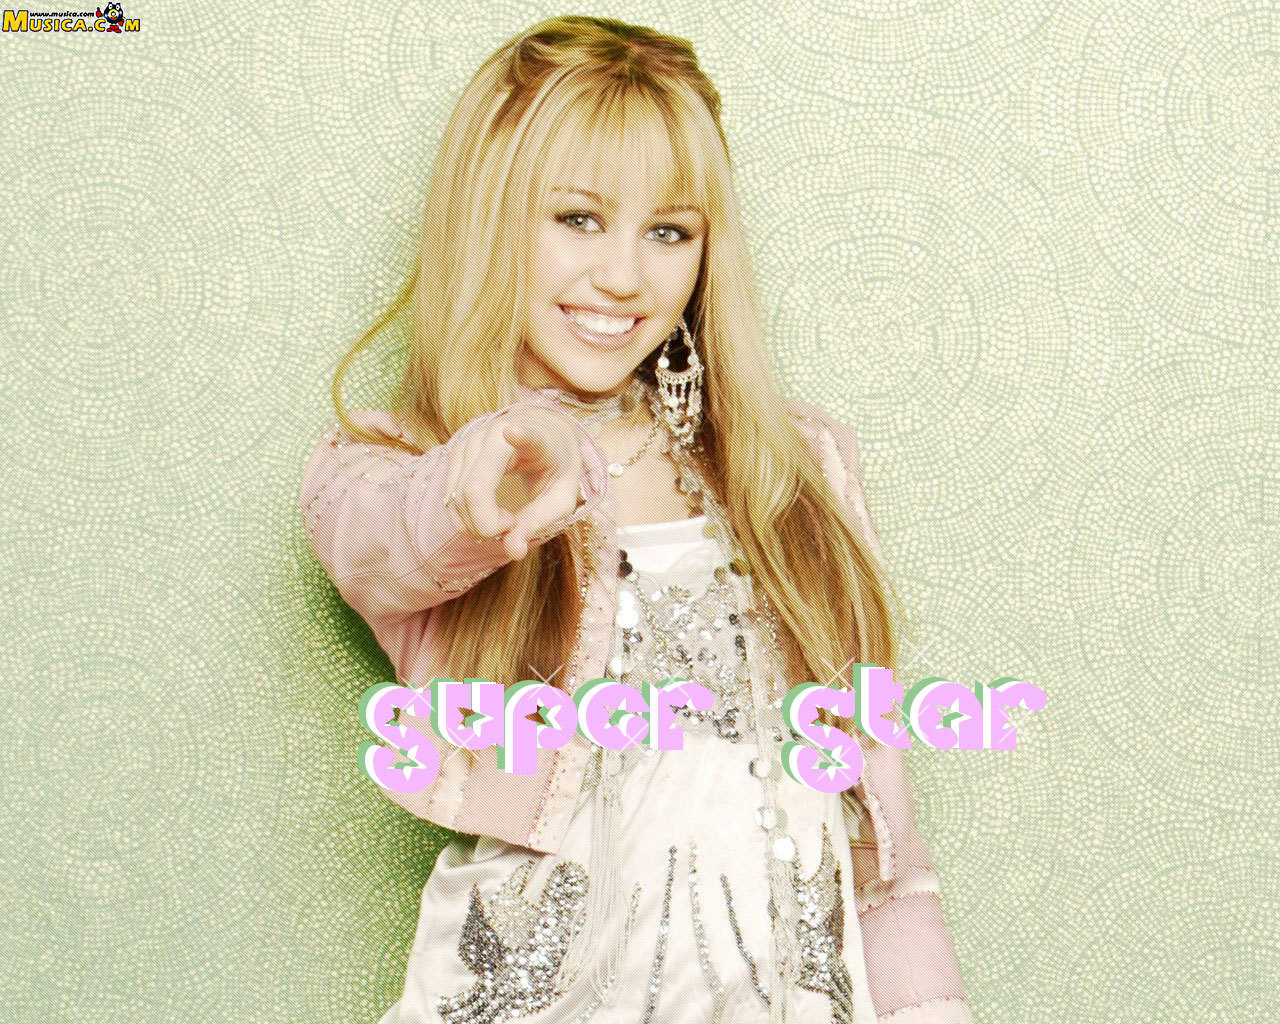 Disney Channel Hannah Montana 9